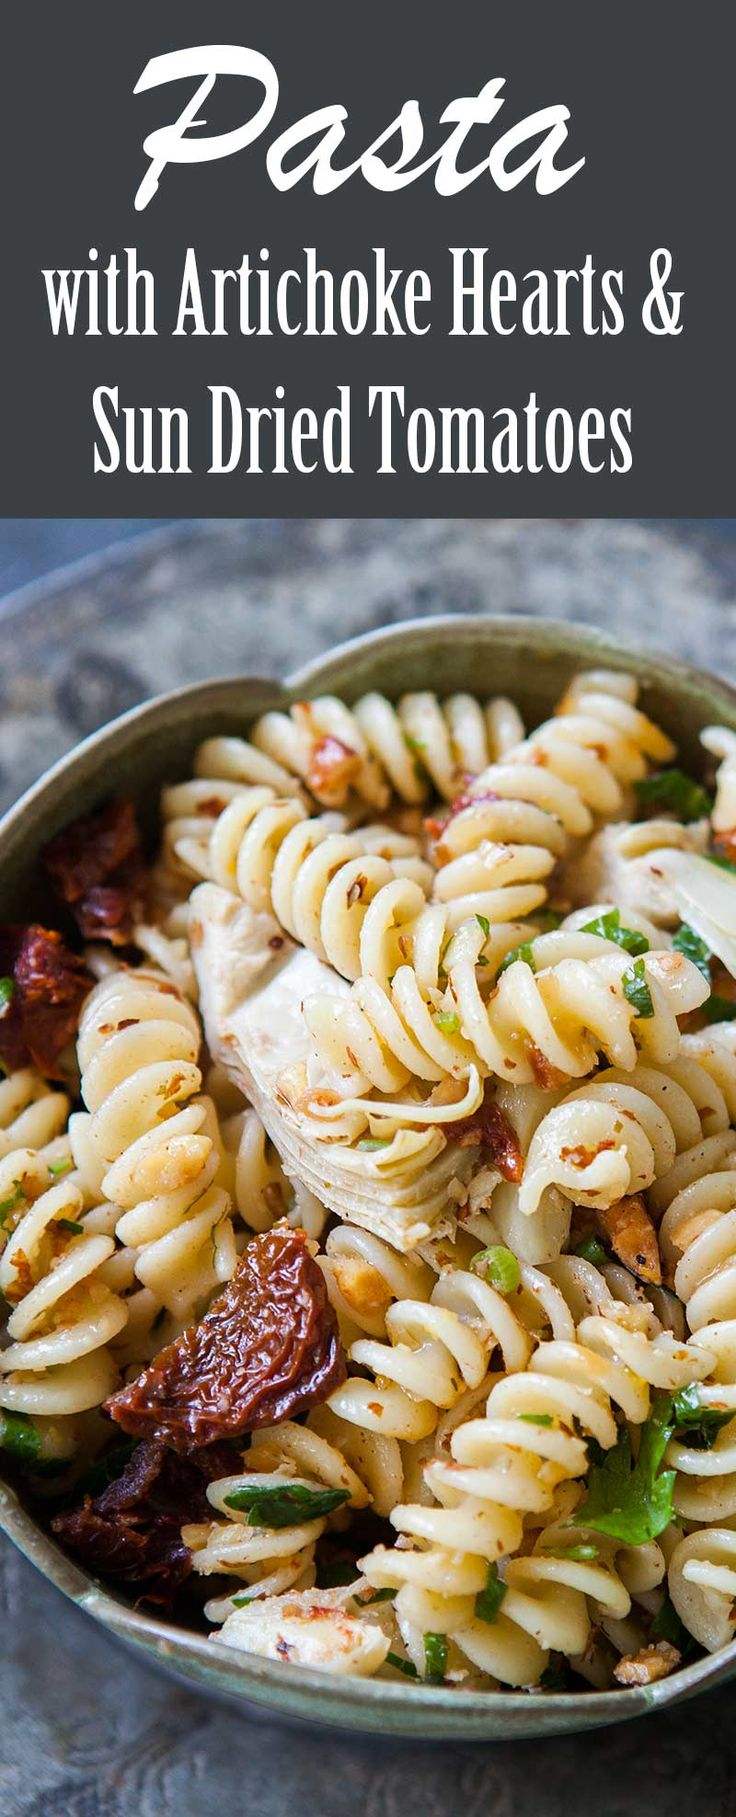 Fusilli pasta tossed with marinated artichoke hearts, sun-dried tomatoes, and toasted almonds. Easy VEGAN pasta dish, perfect for a potluck!